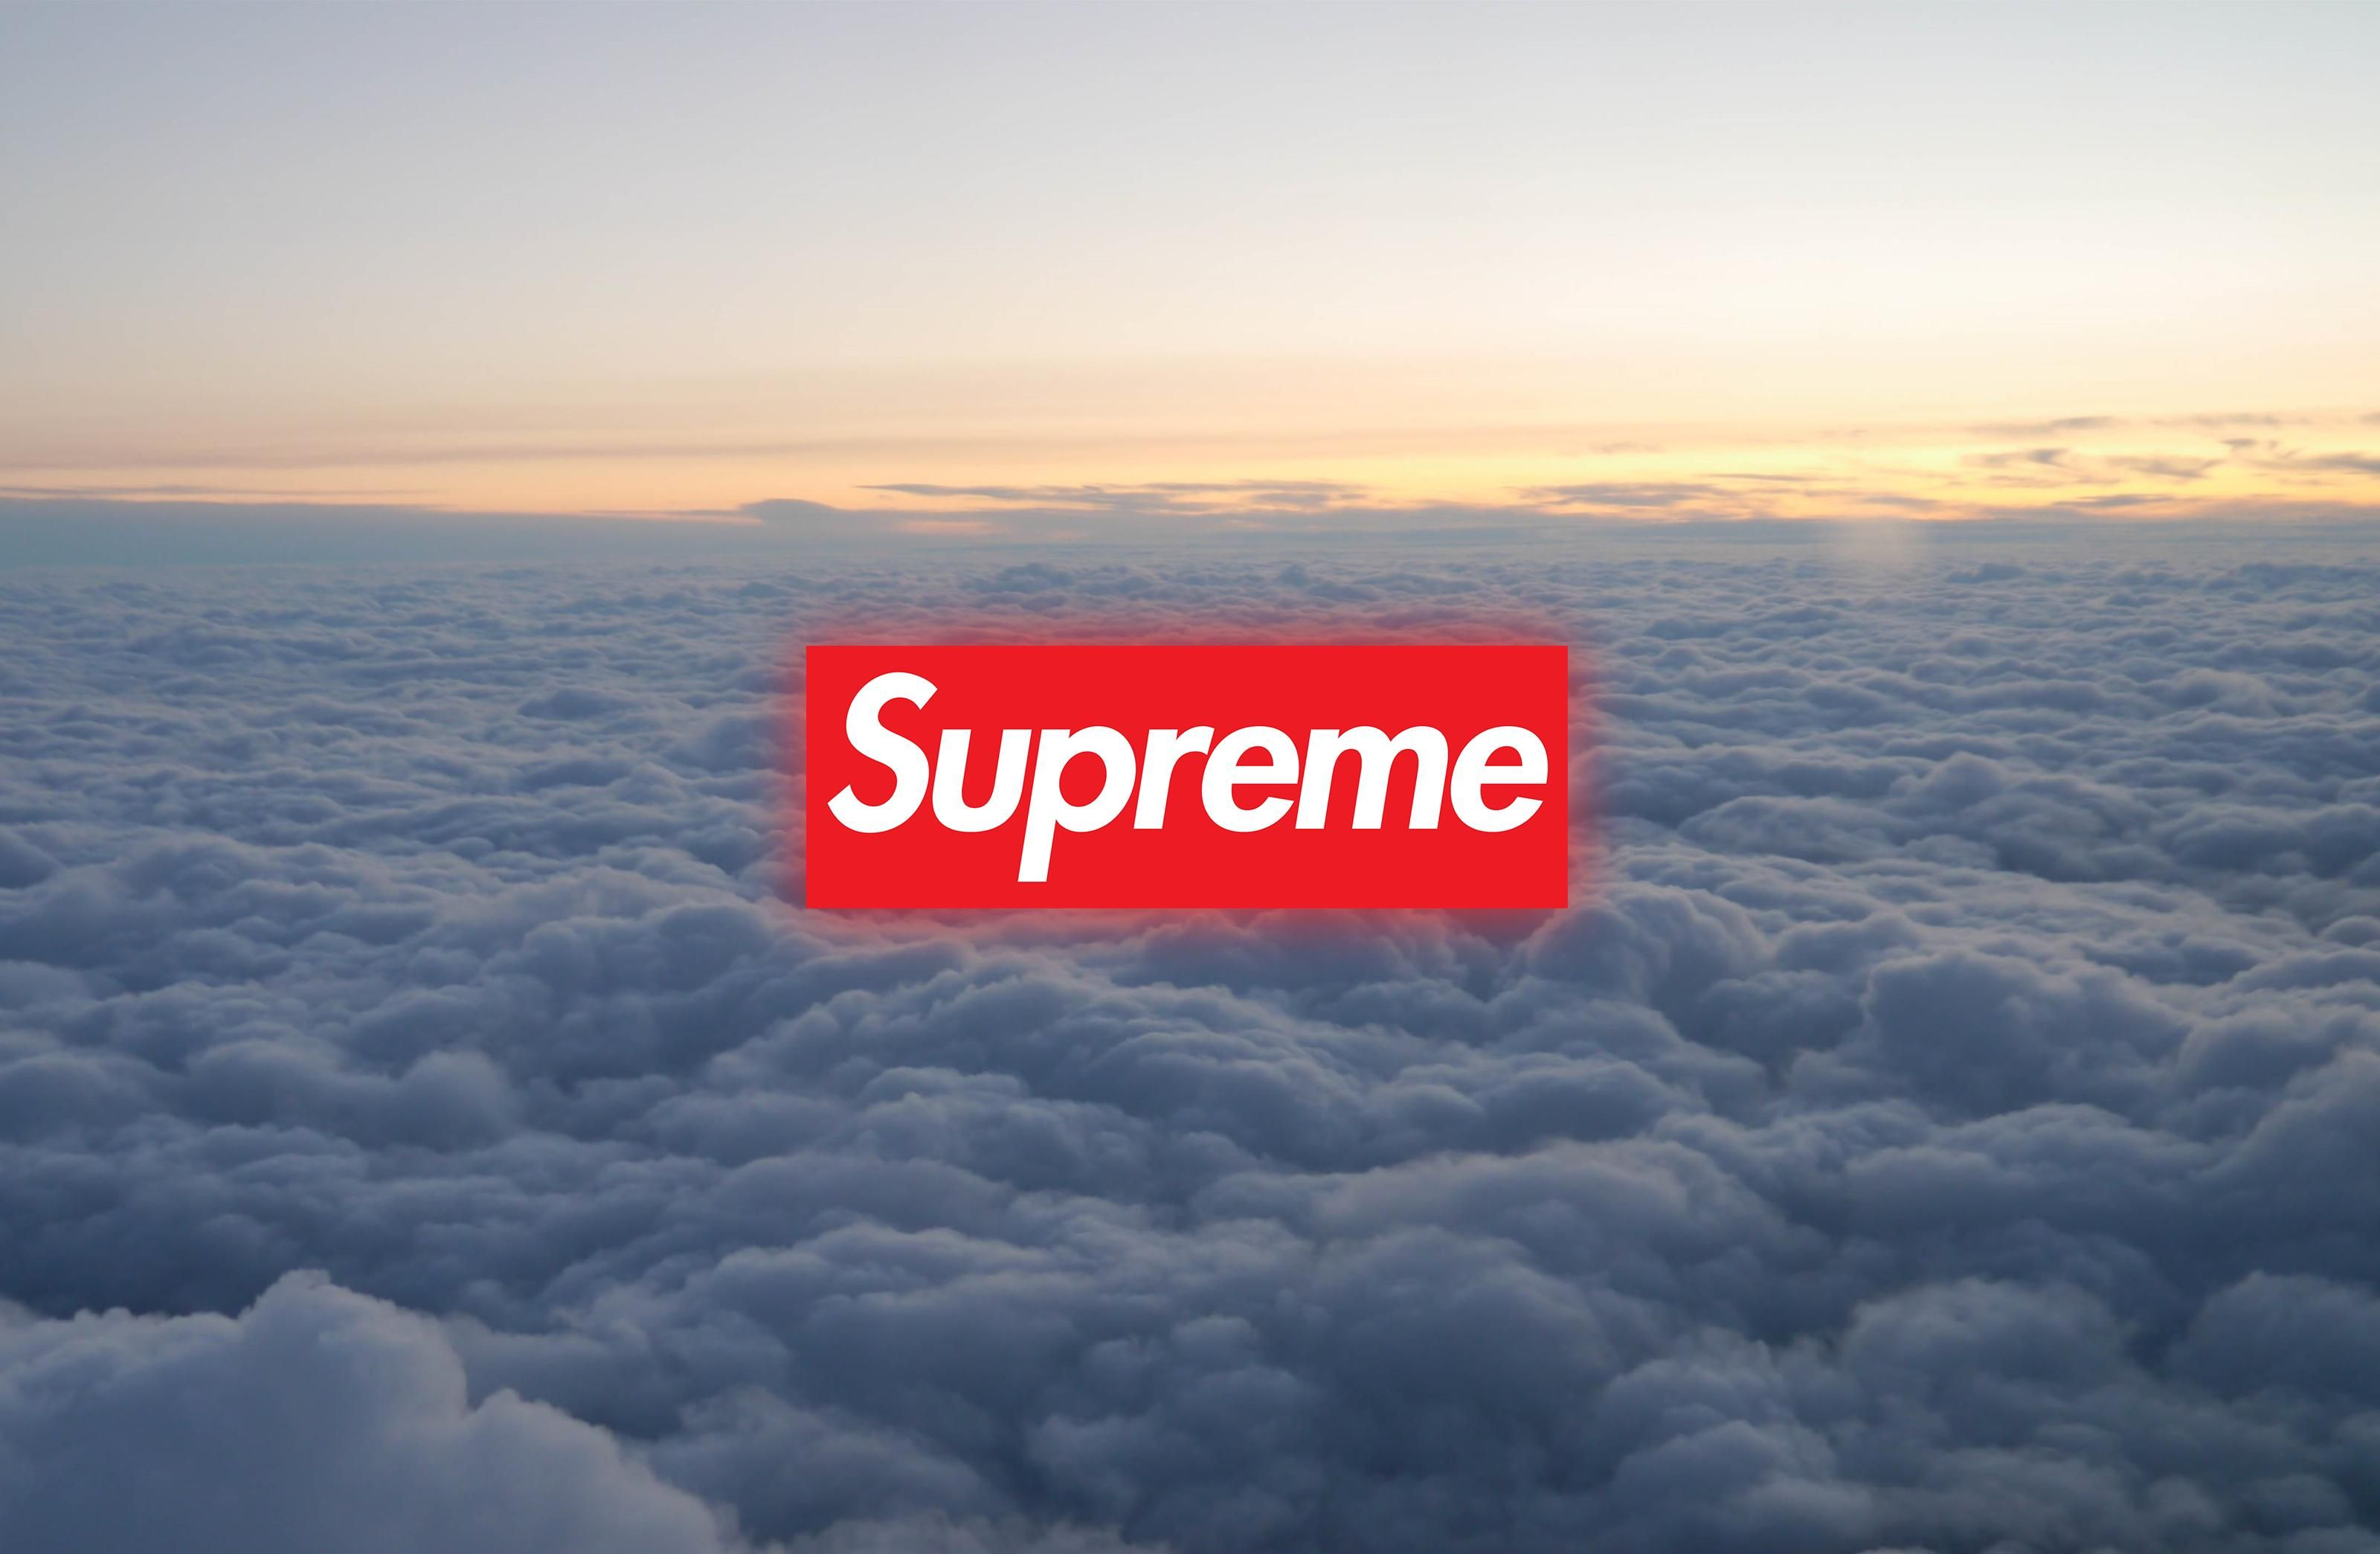 Supreme Wallpaper 4 3200 X 2089 Stmed Net Supreme Wallpaper Supreme Iphone Wallpaper Supreme Wallpaper Hd